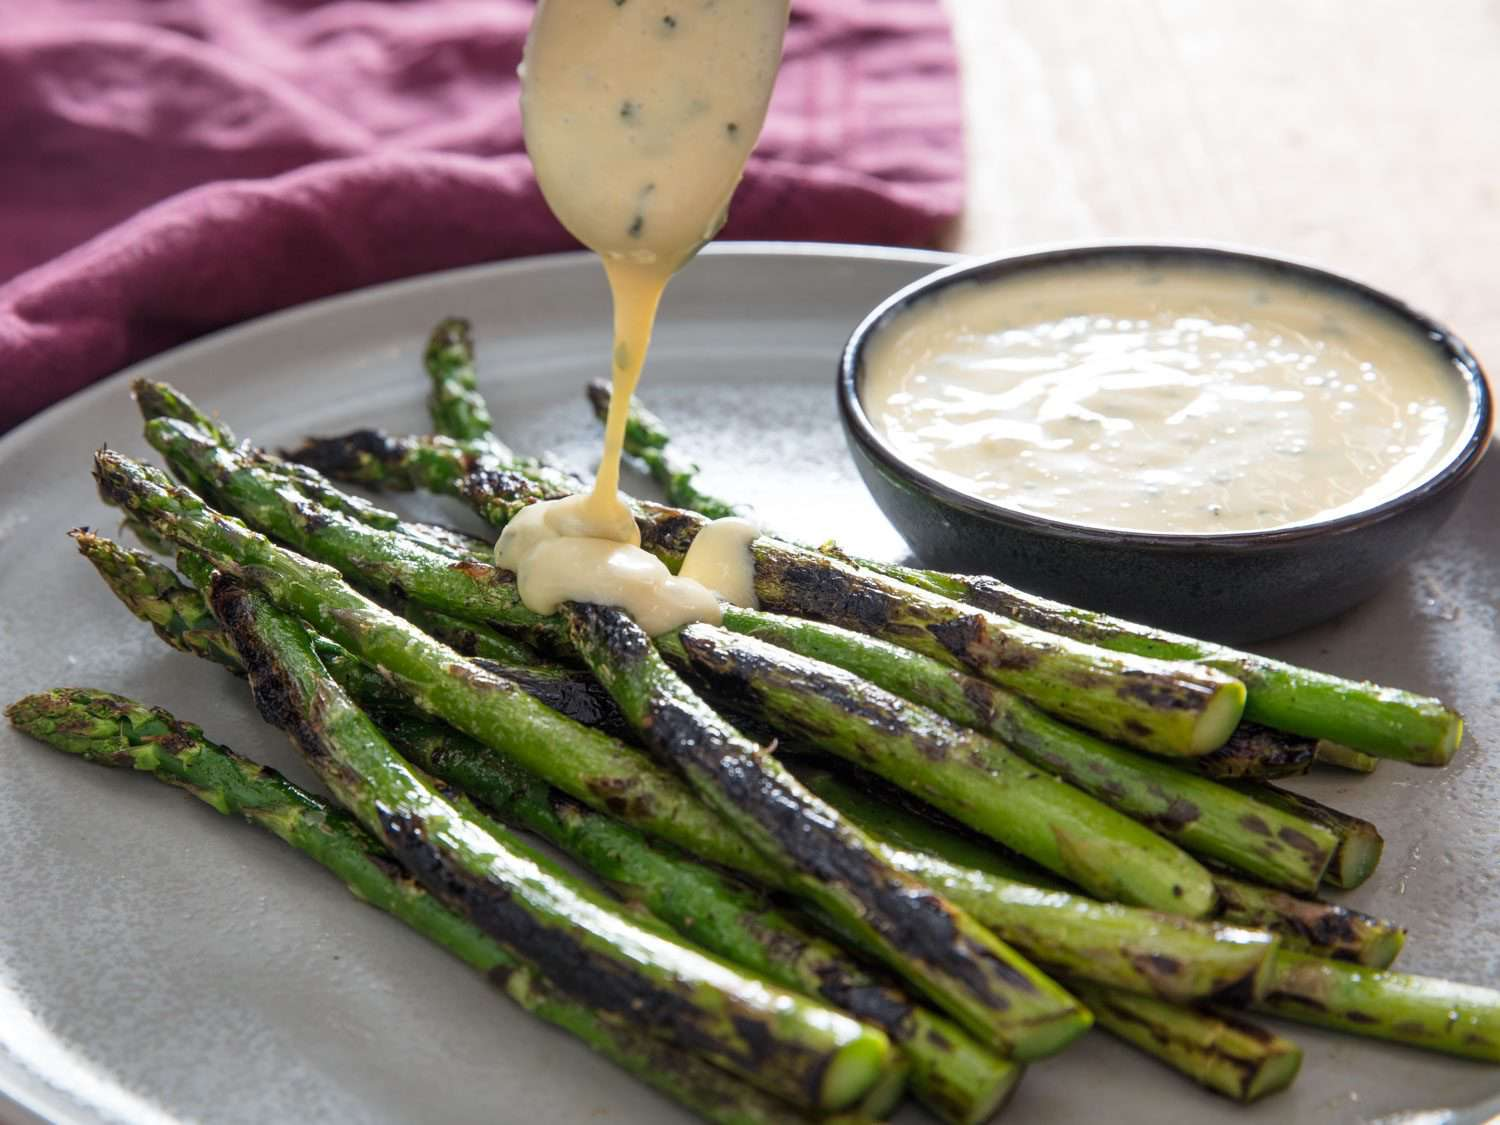 Drizzling miso béarnaise over asparagus.